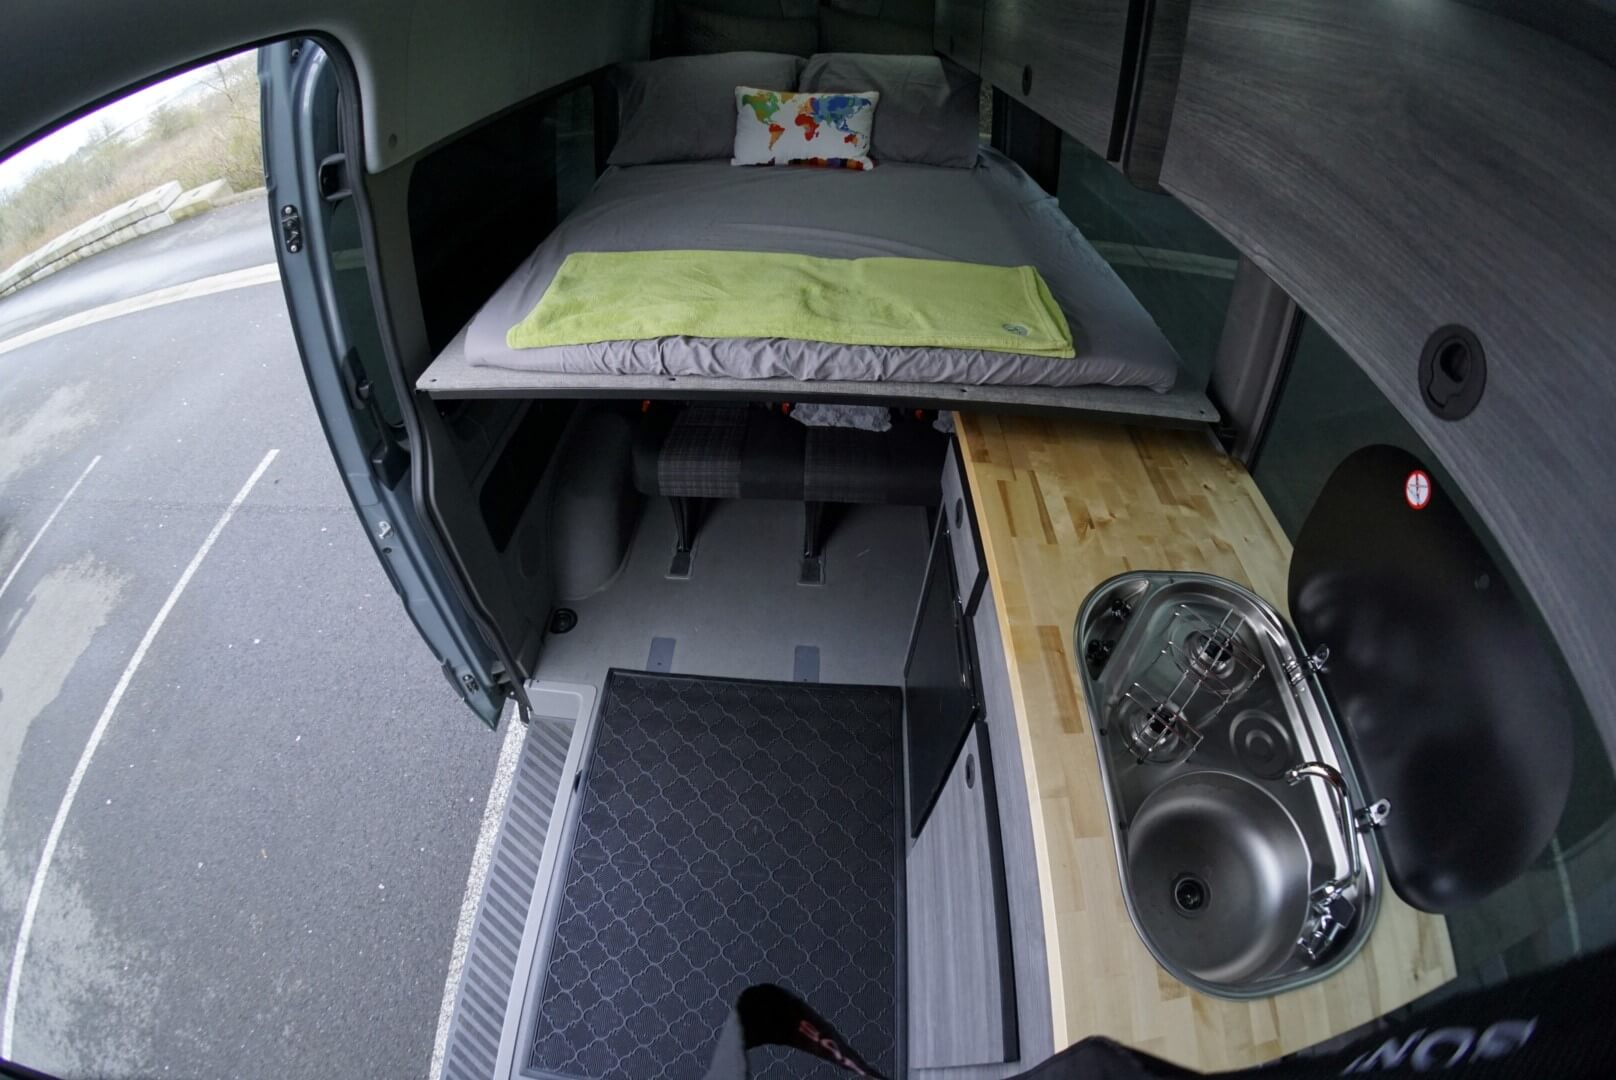 Superfeet Sprinter Van Custom Interior - Kitchen!